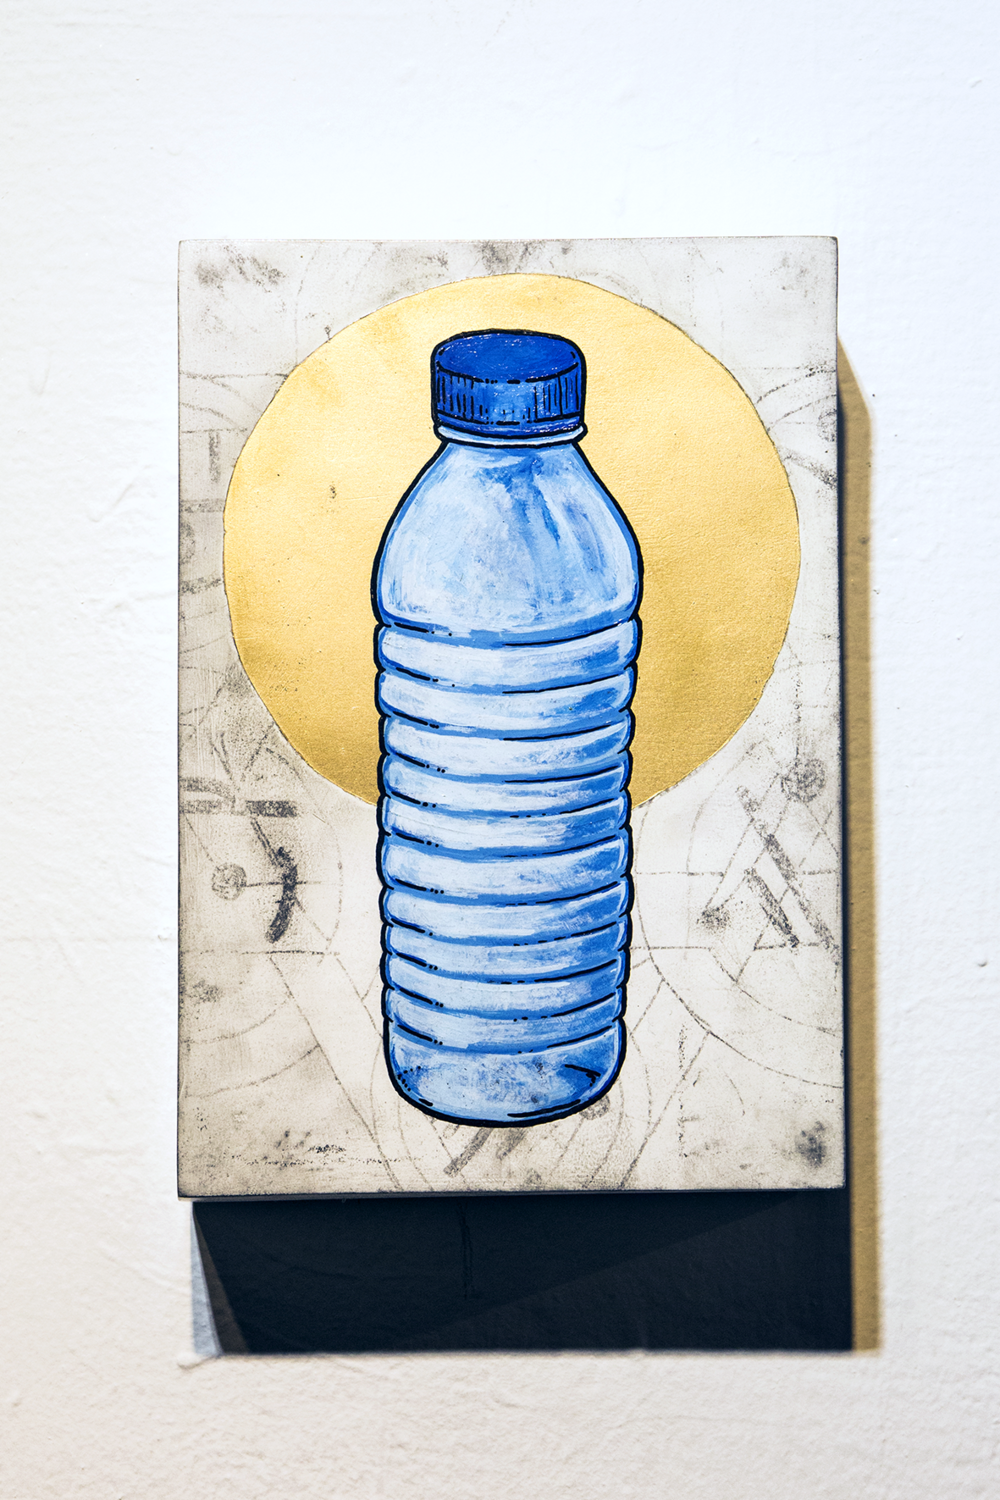 Water - Water  Acrylic, Graphite, Spray paint, and Paint Pen on board  15.5 x 22 x 5cm